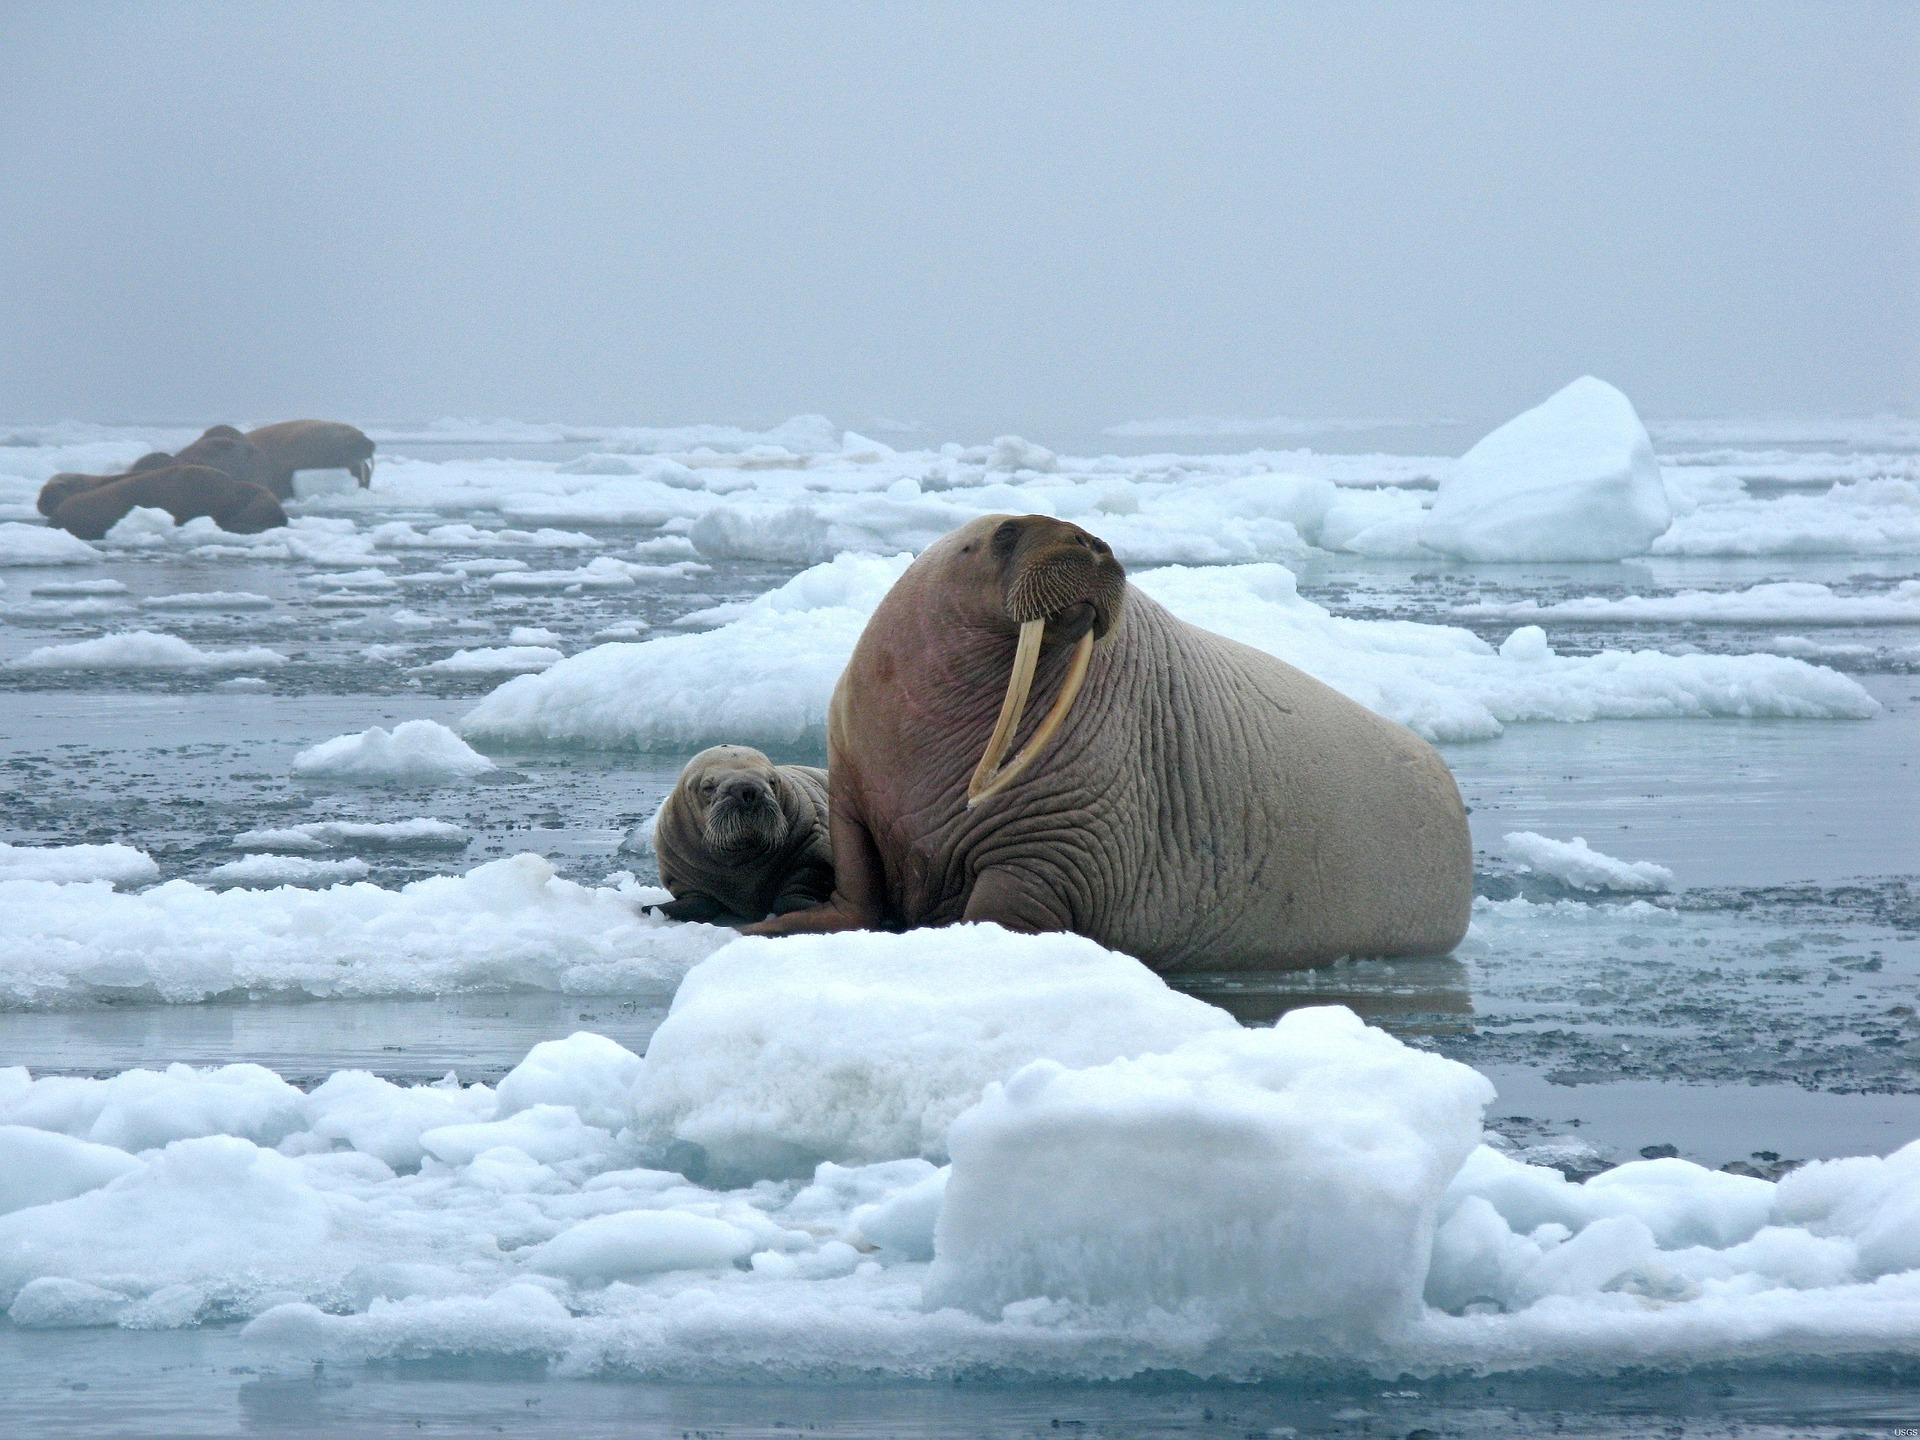 The controversial walrus falling off cliffs in Russia on Netflix Our Planet is a brutal reality.